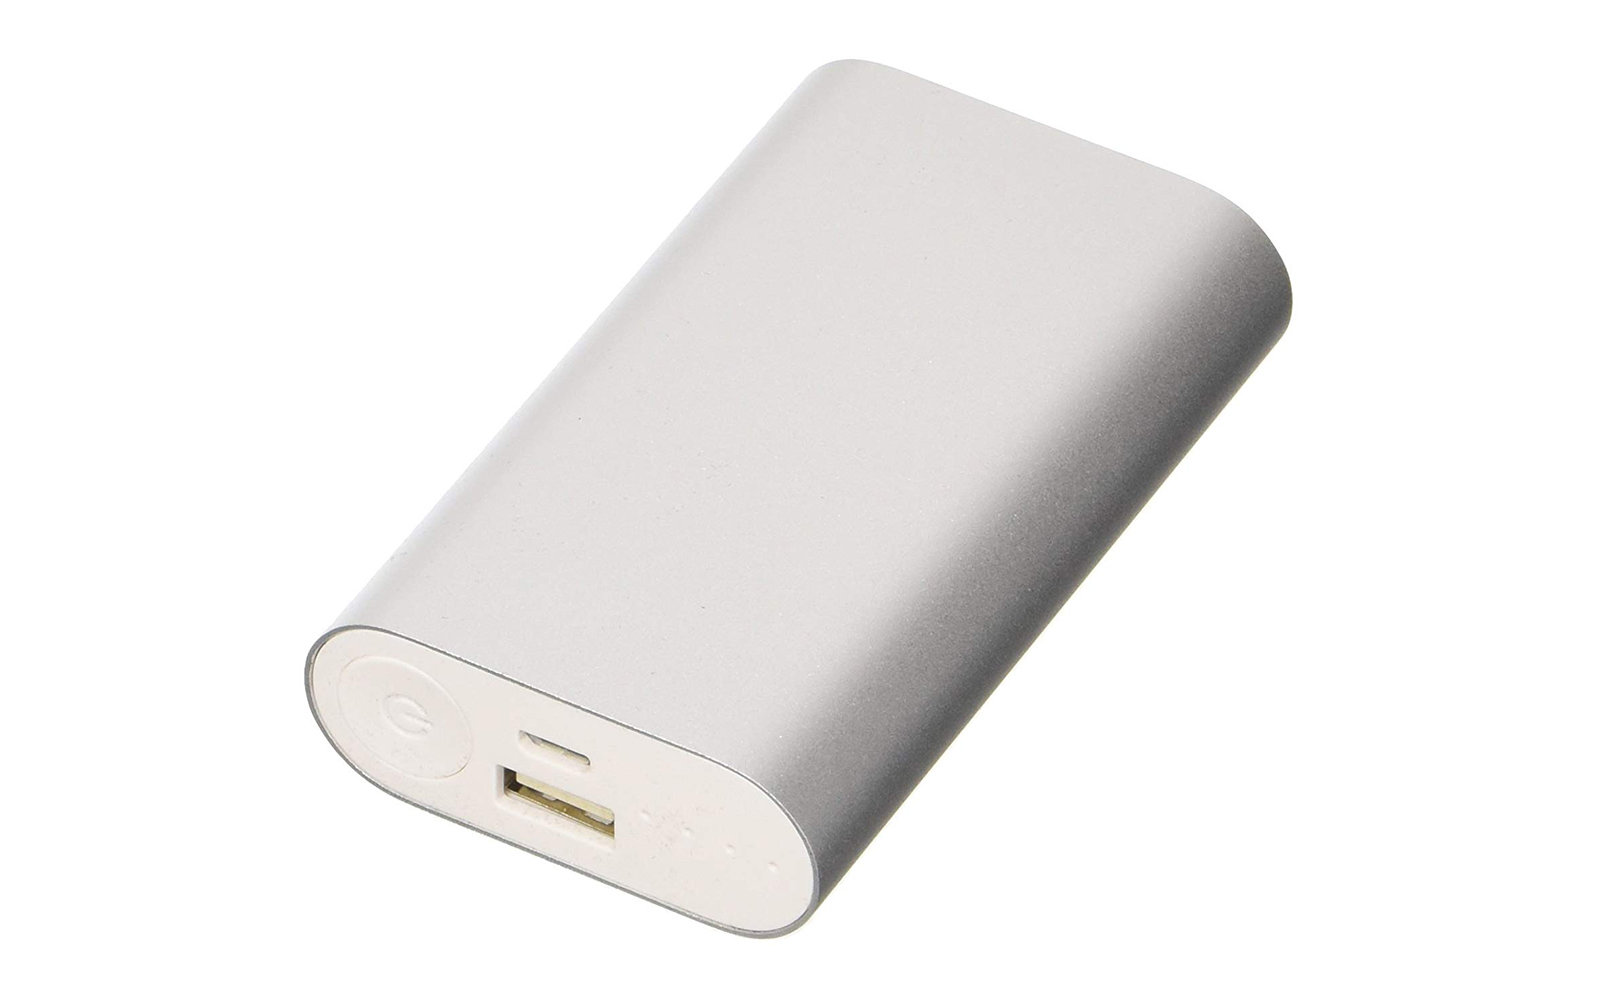 Cynthia Rowley 4400mAh External Battery Pack for Universal Smartphones